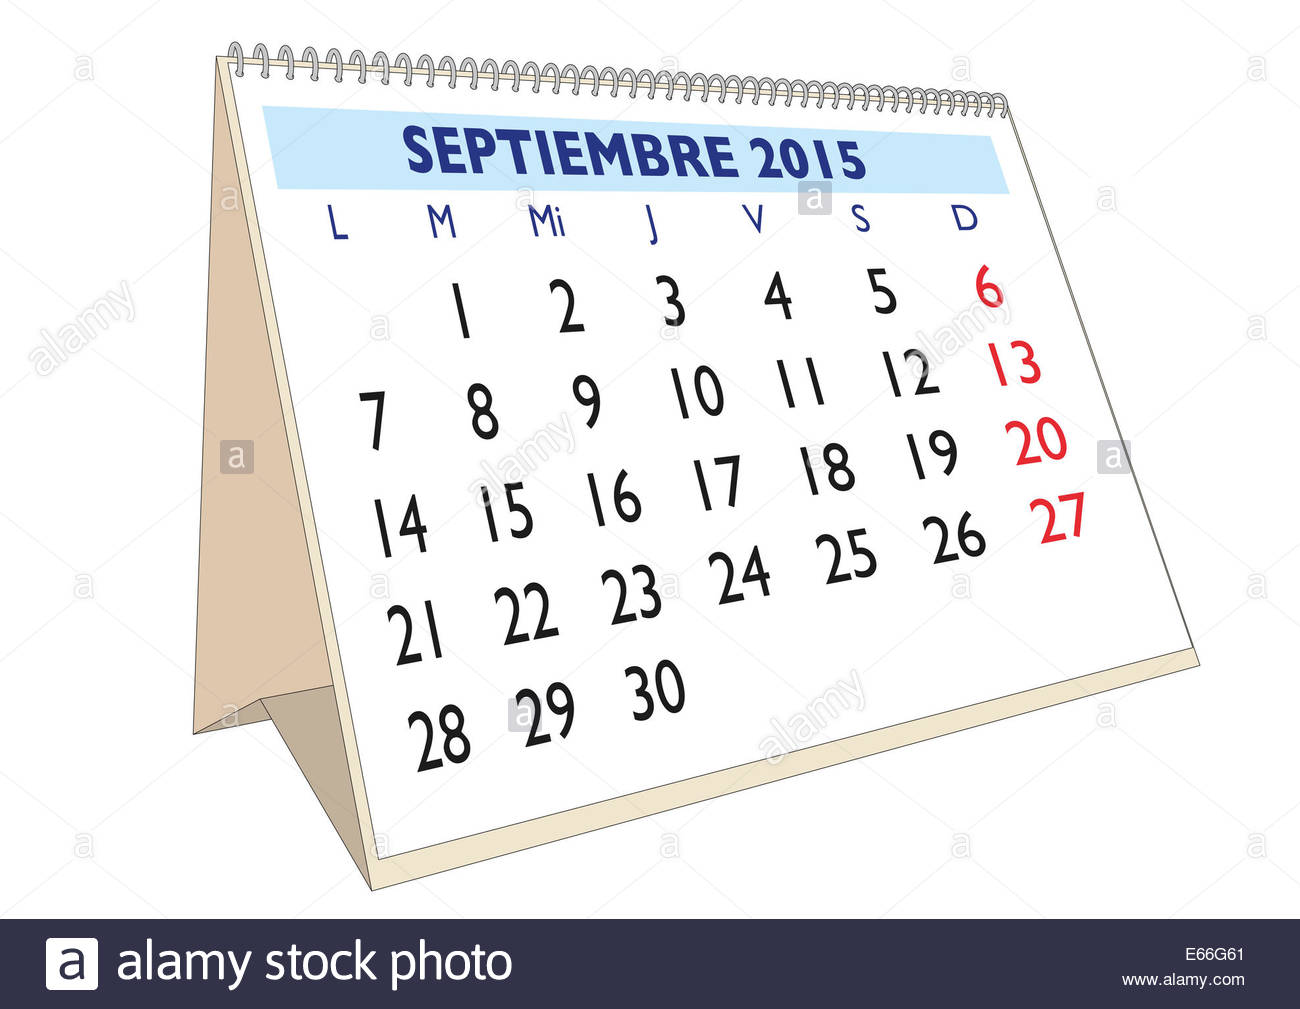 september month in a year 2015 calendar in spanish septiembre 2015